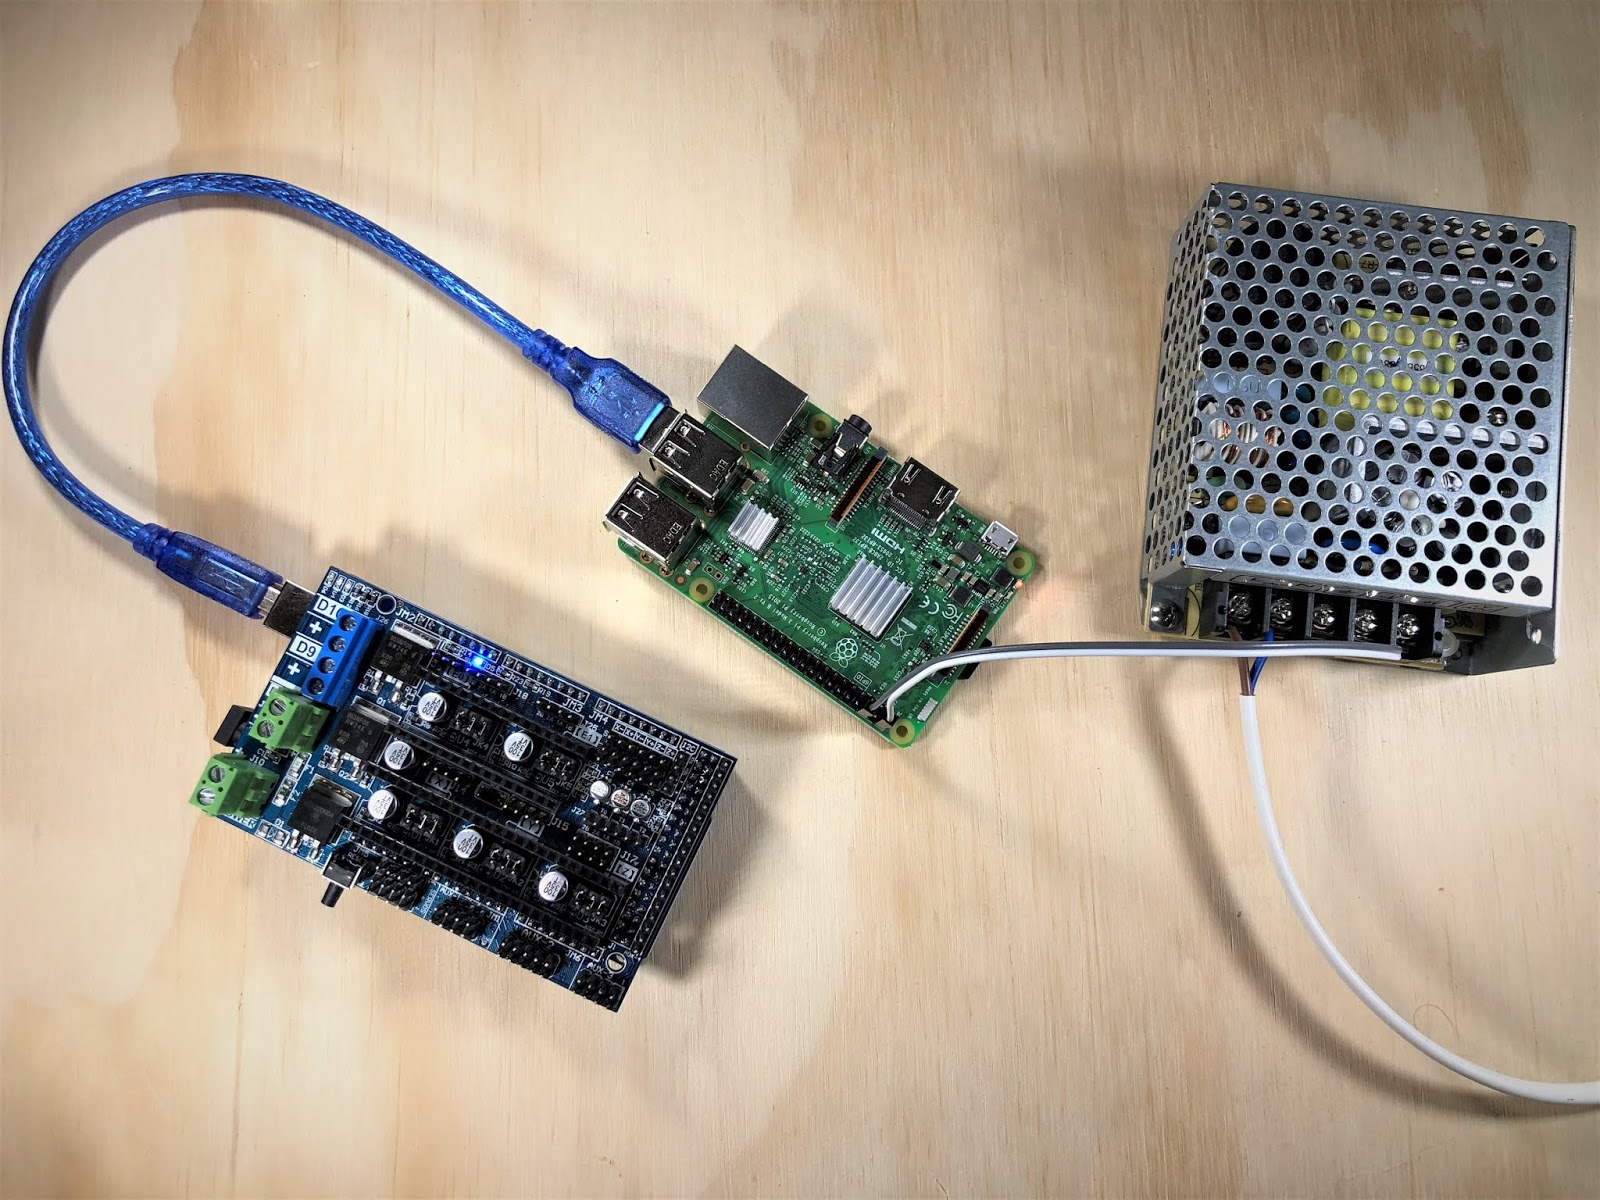 Electronics #3: Setting up the first RAMPS with Klipper